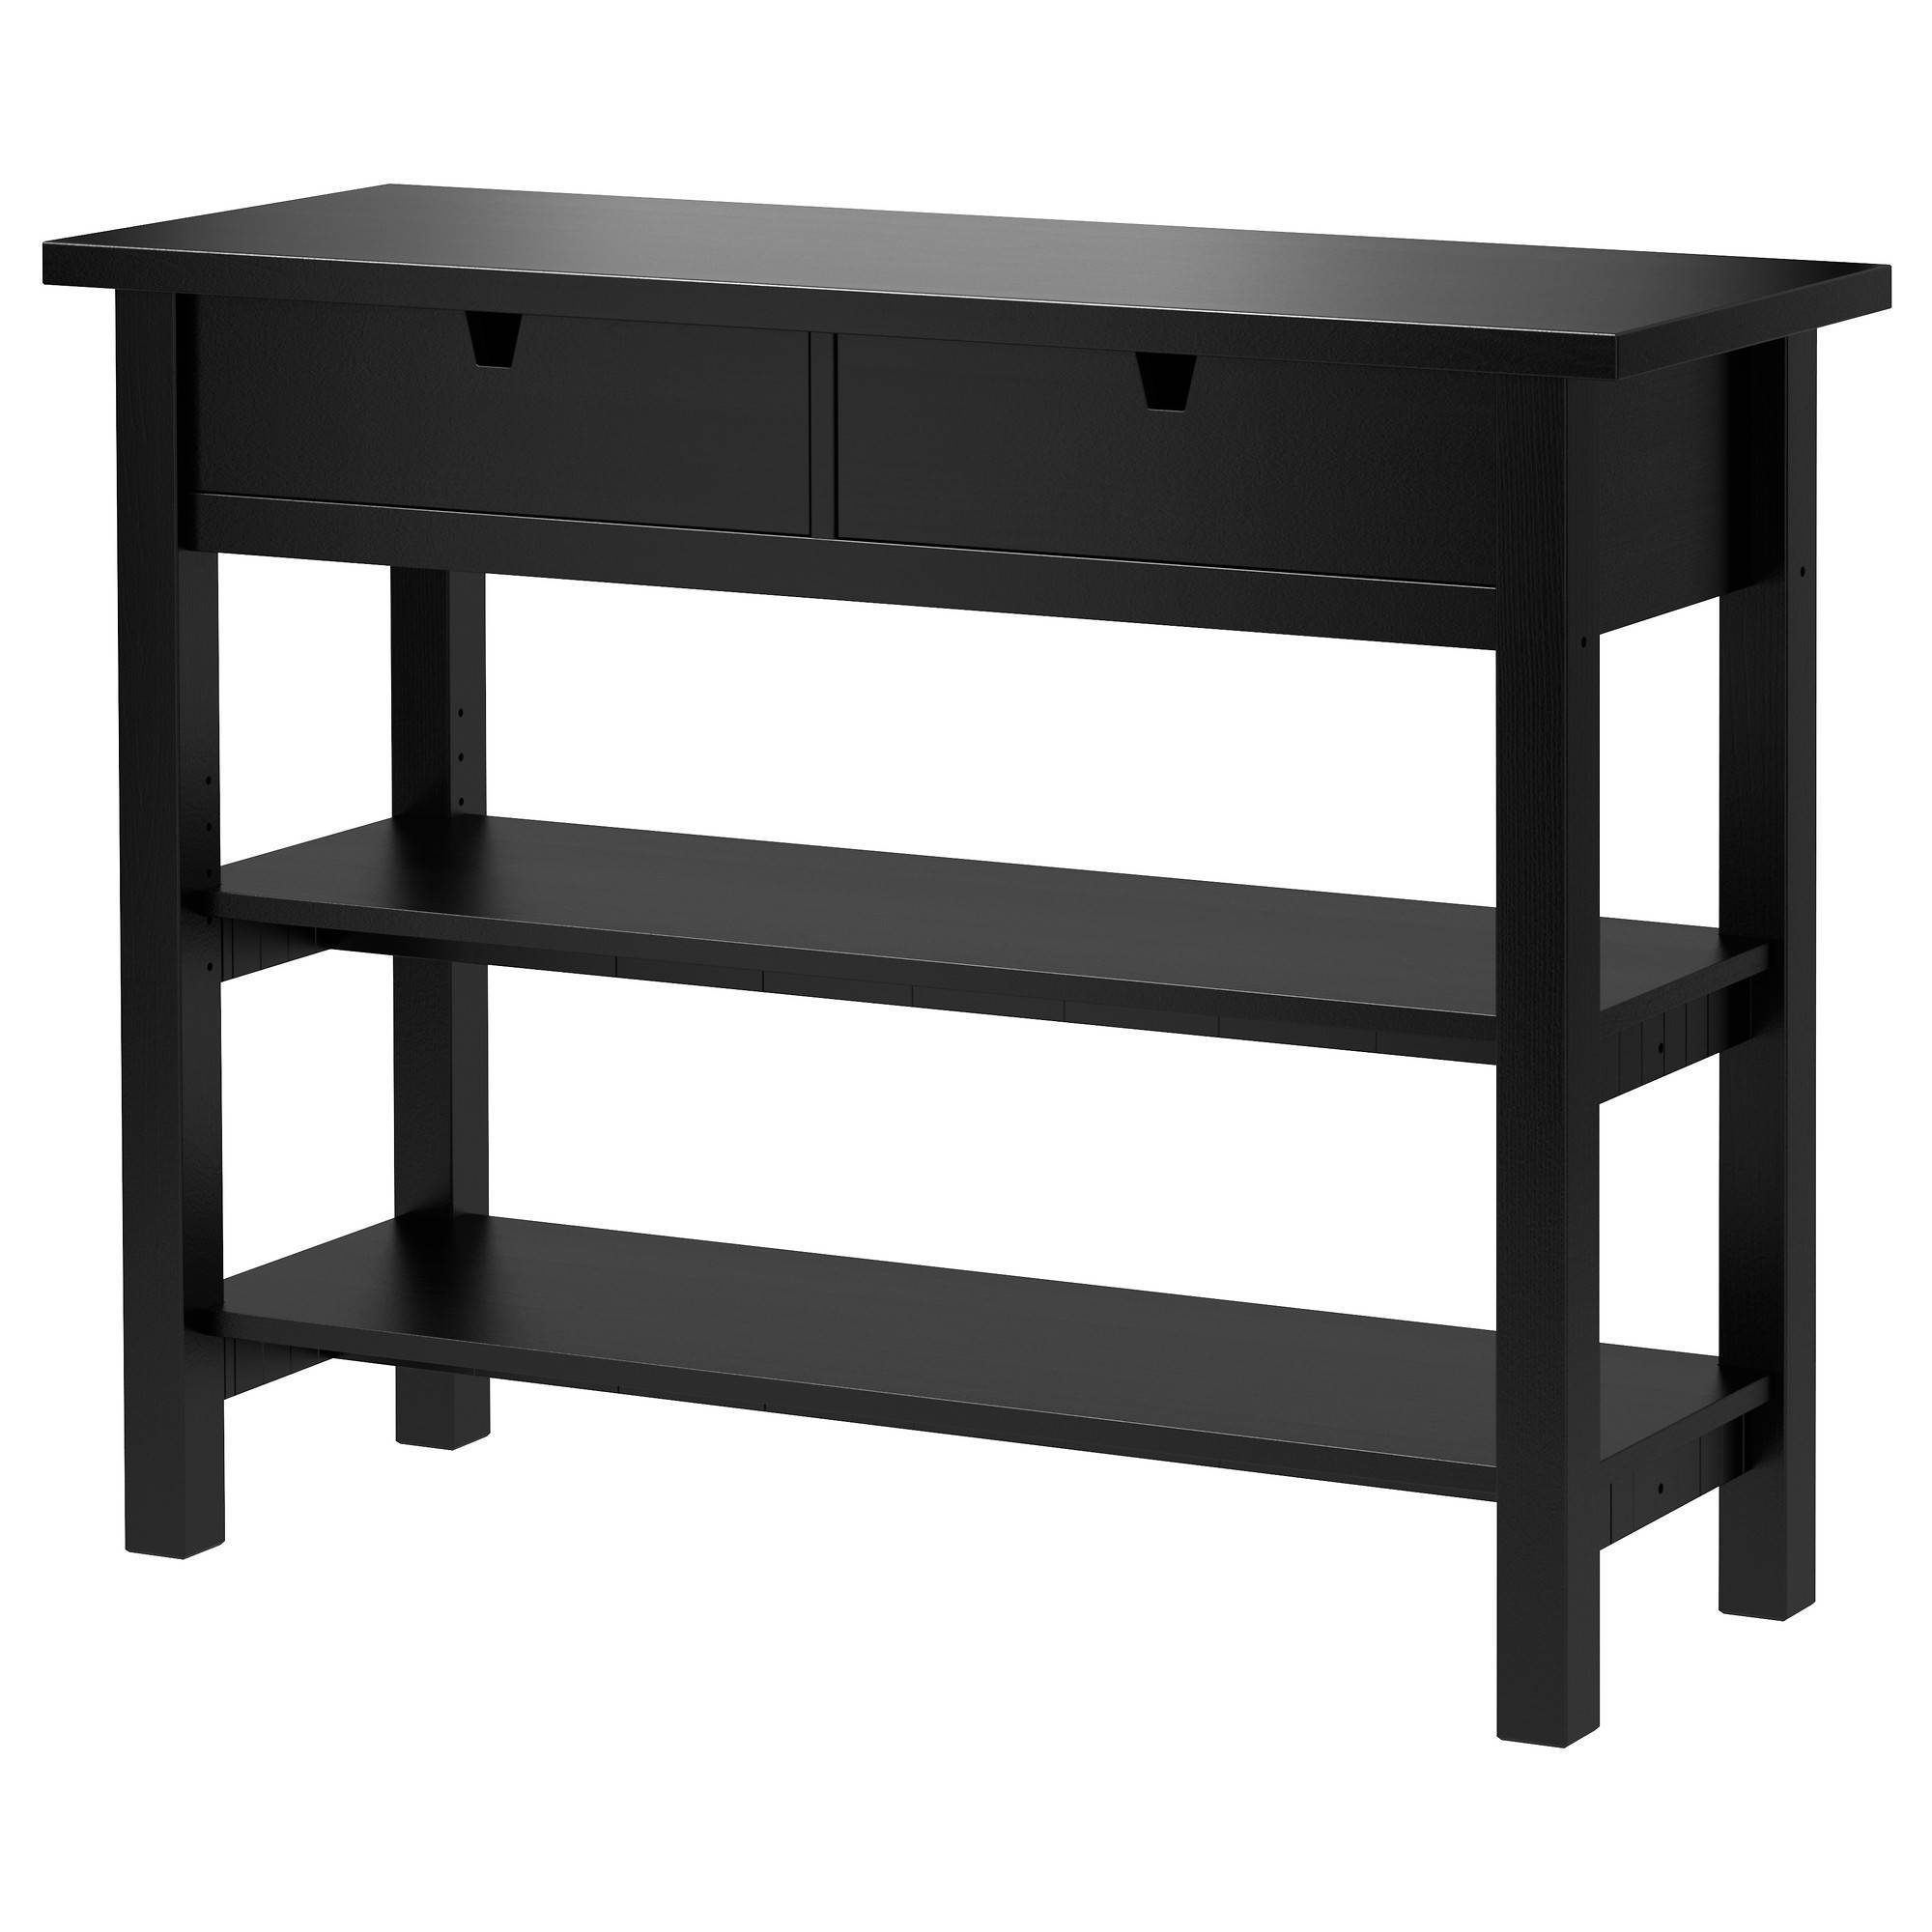 Buffet Tables & Sideboards - Ikea with Sideboard Buffet Tables (Image 4 of 15)